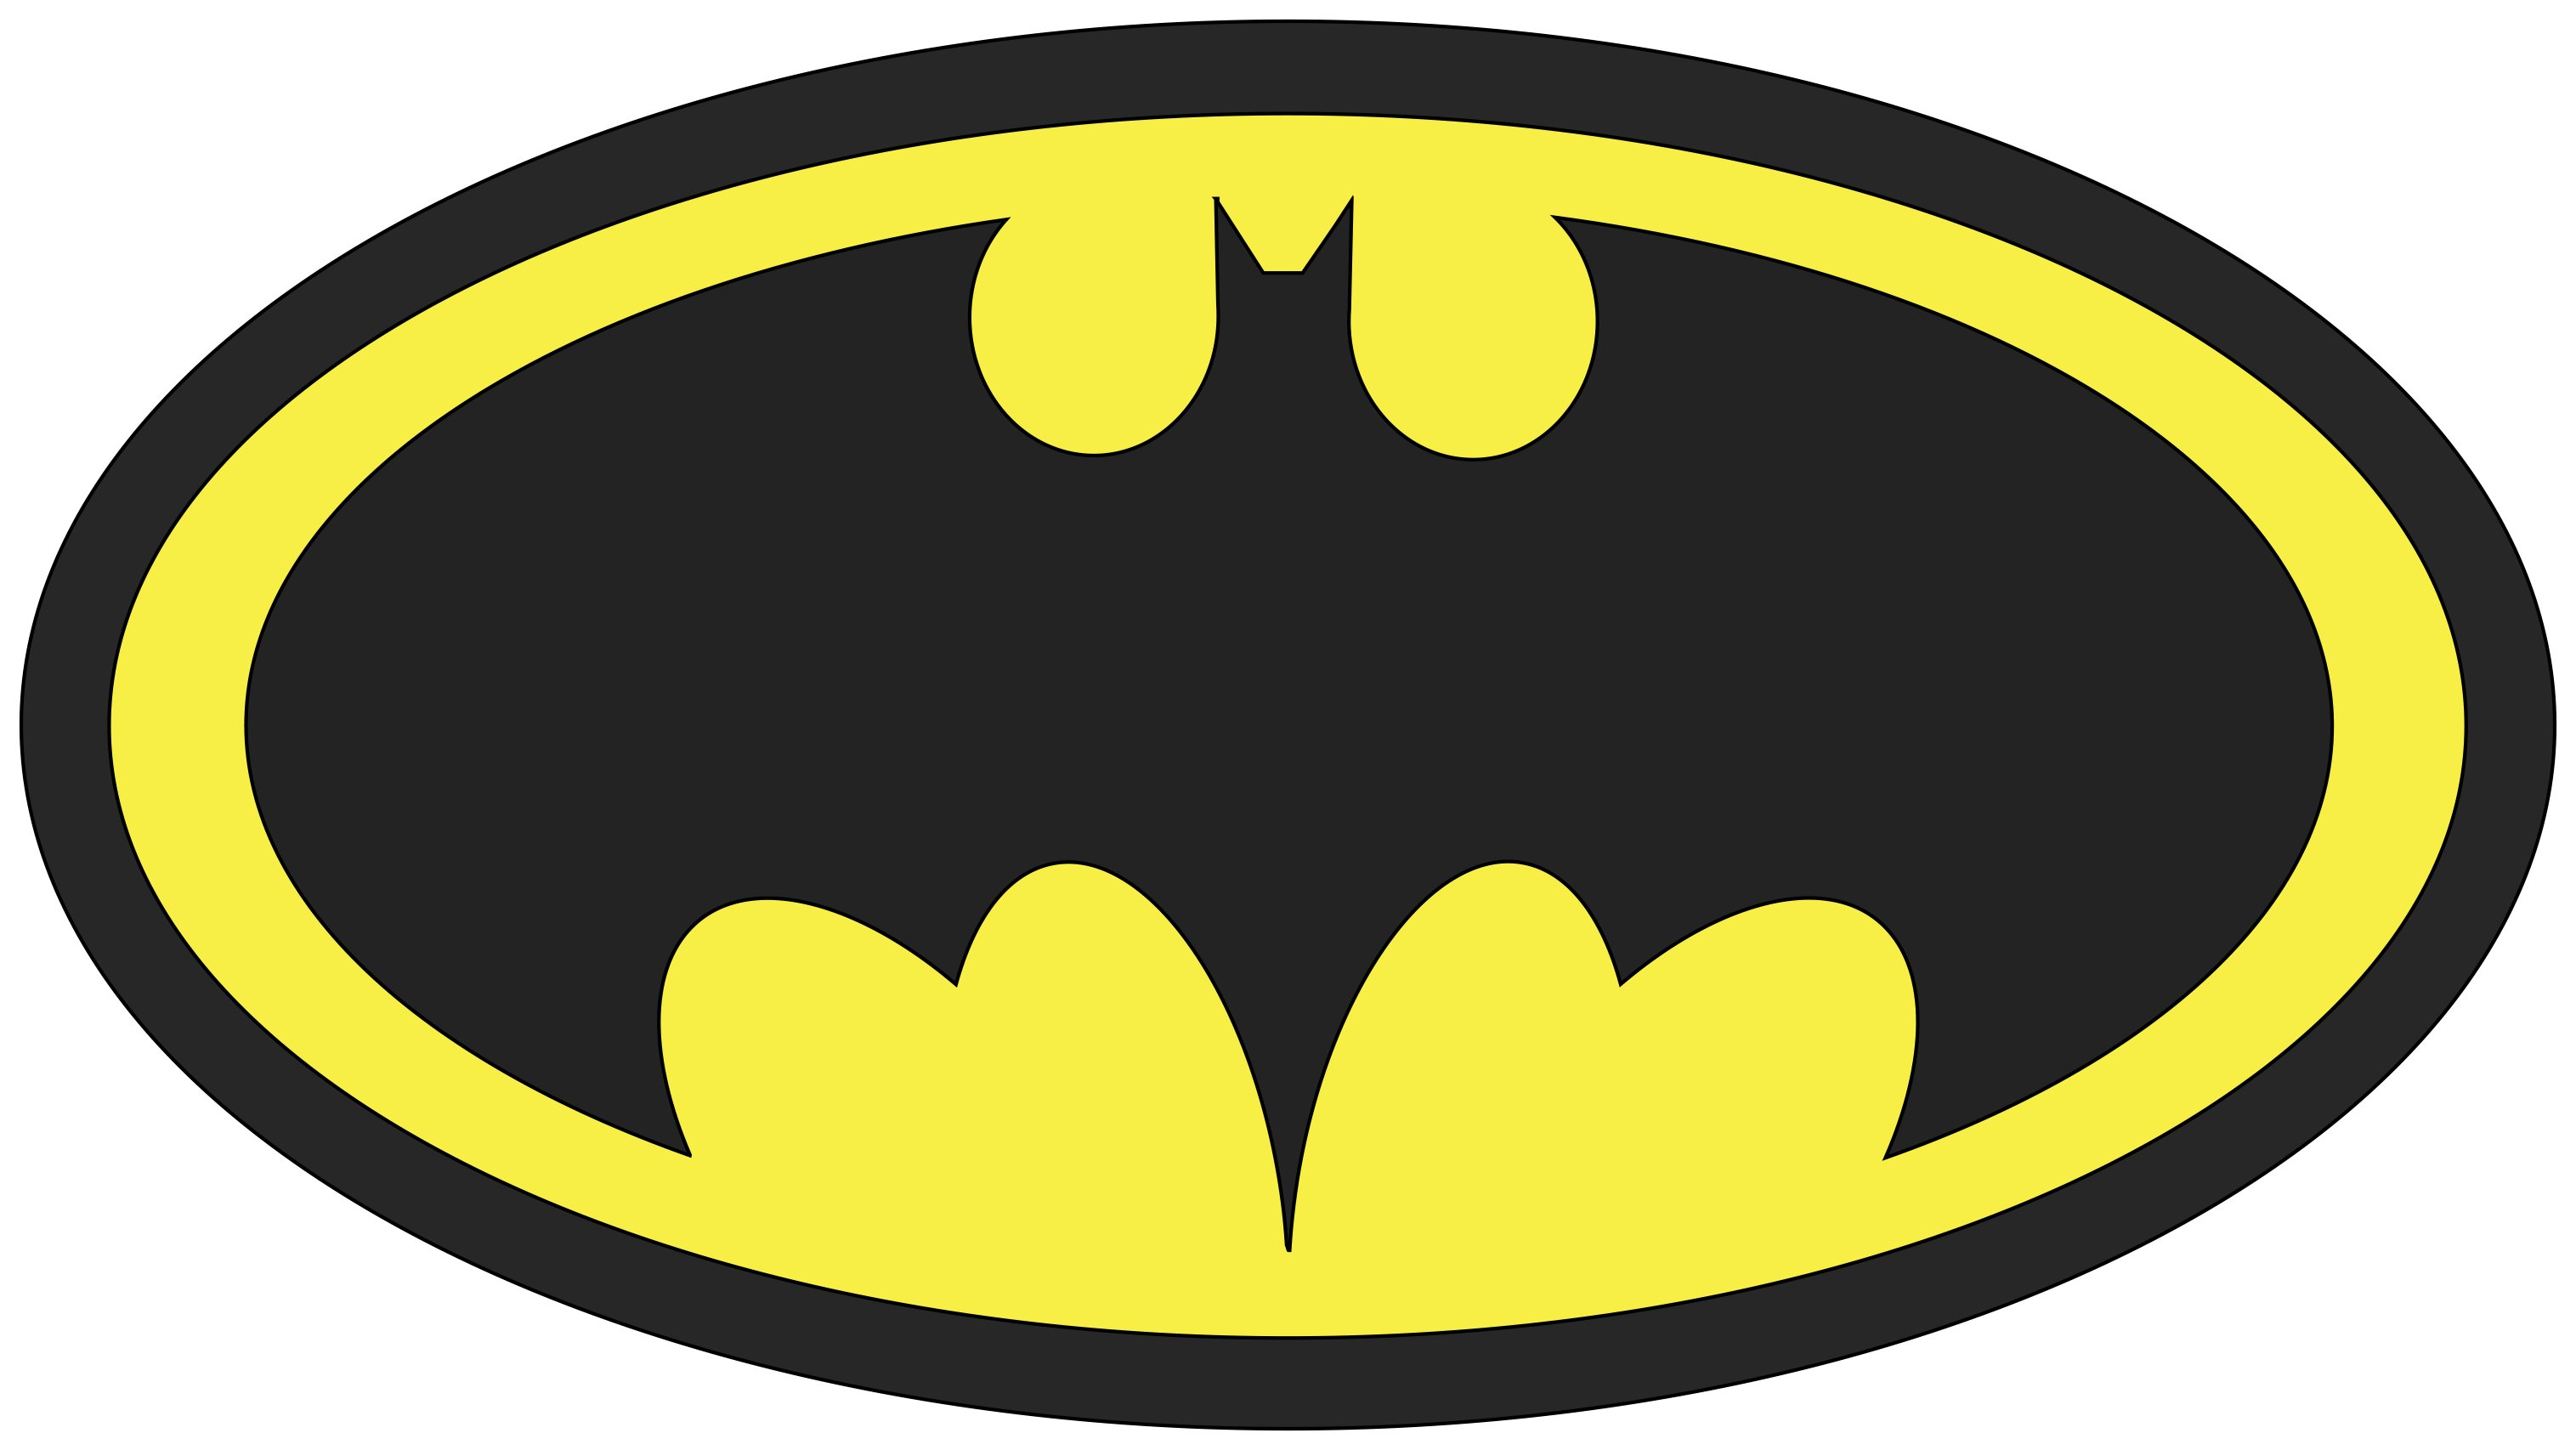 Batman Transparent PNG Image